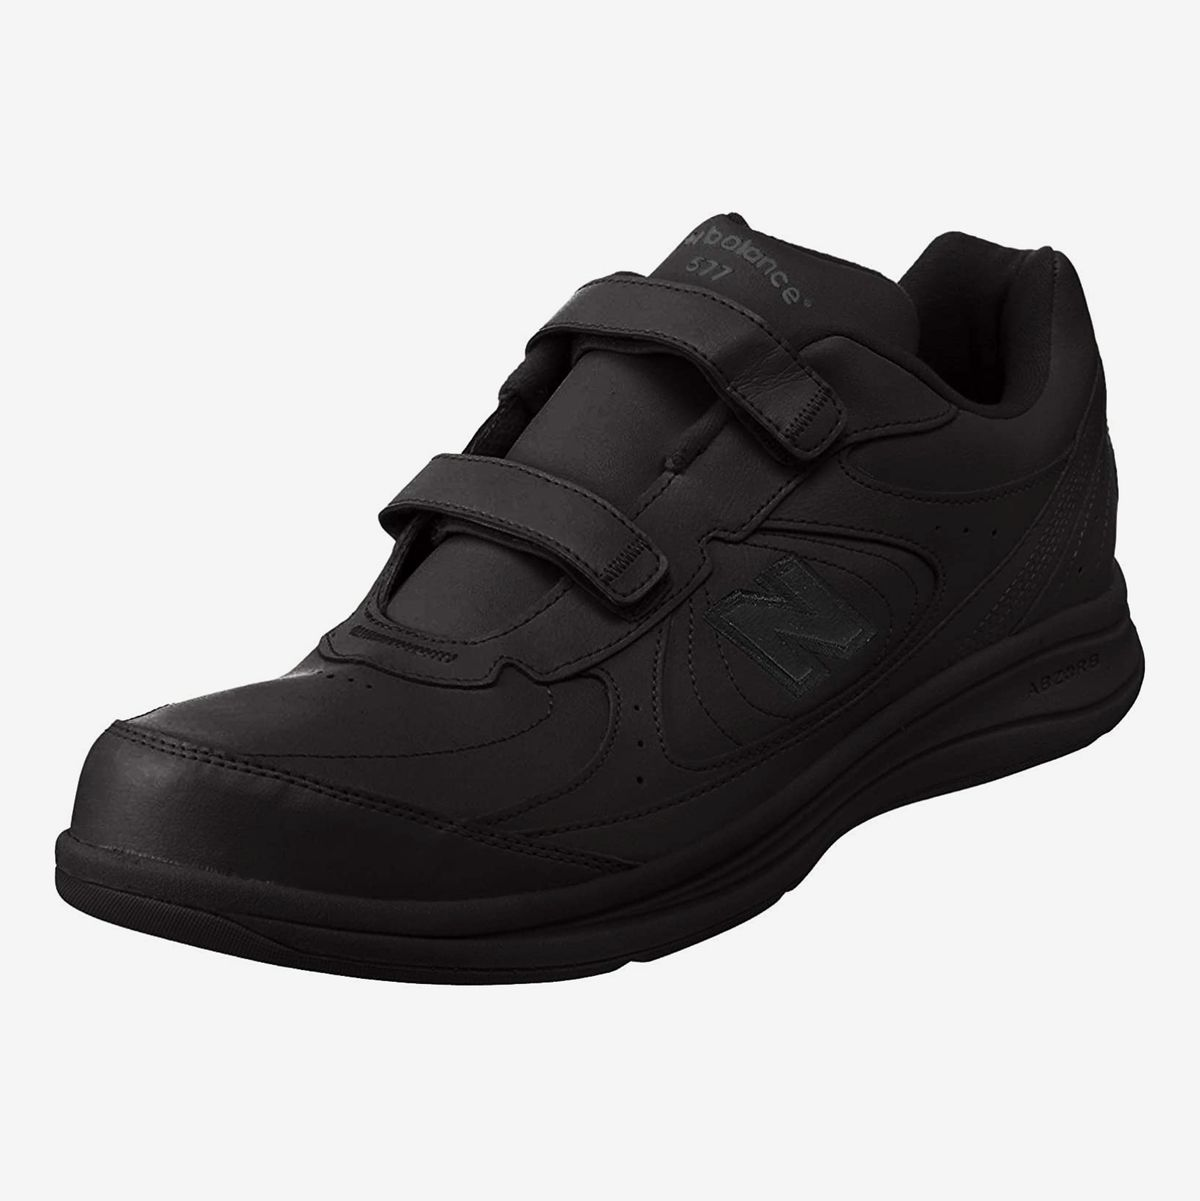 most comfortable sports shoes for men